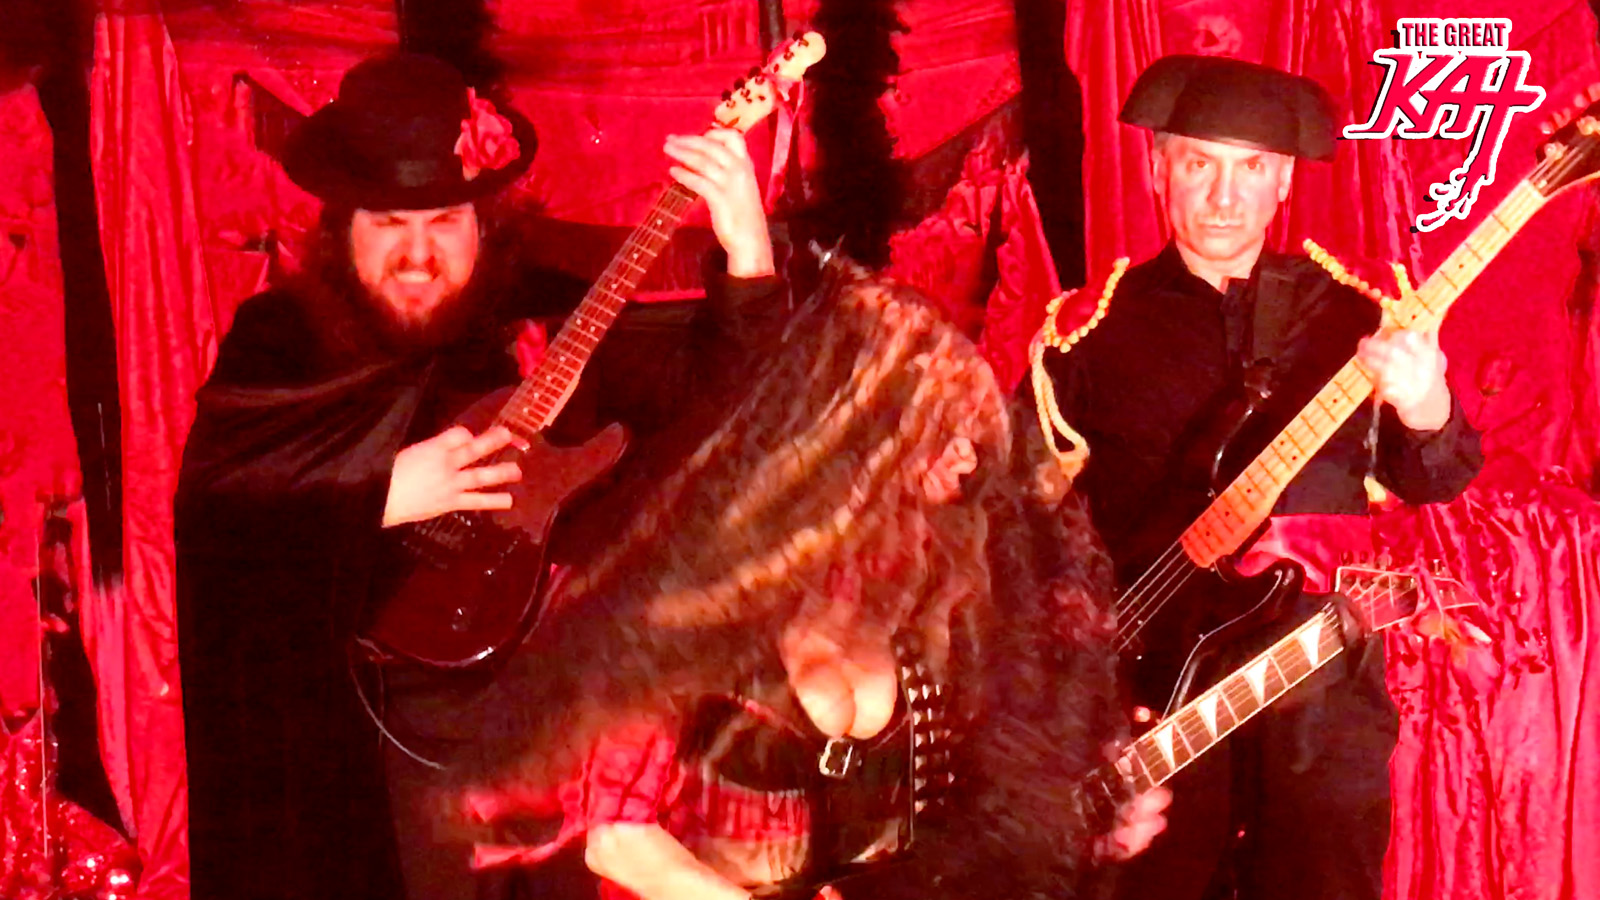 """CARMEN SHREDS with her BAND! The Great Kat's SARASATE'S """"CARMEN FANTASY"""" MUSIC VIDEO!"""